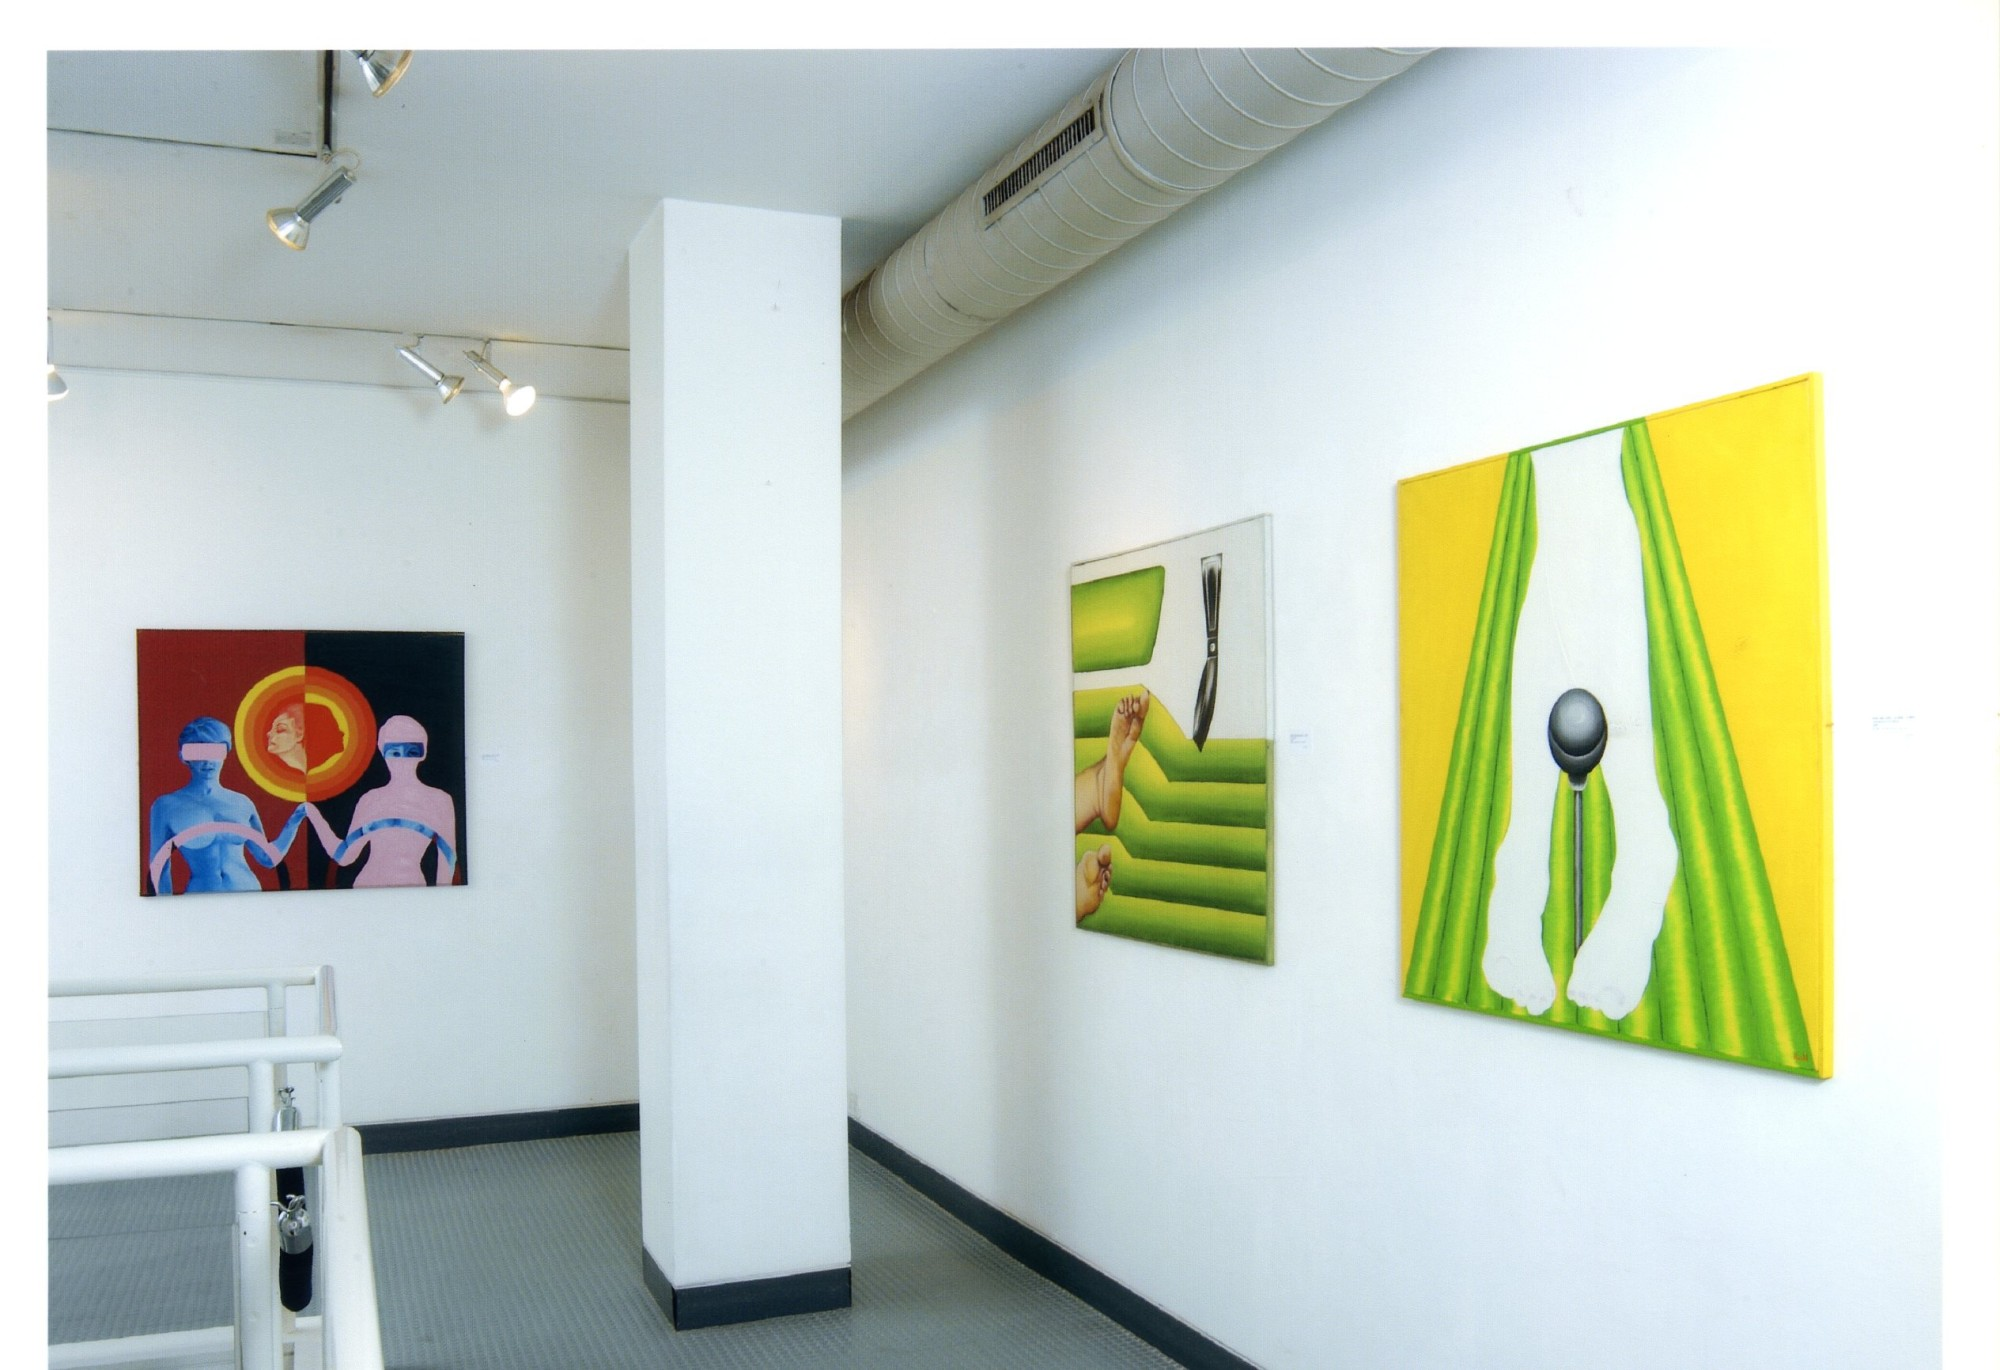 """<span class=""""link fancybox-details-link""""><a href=""""/exhibitions/119/works/image_standalone506/"""">View Detail Page</a></span><p>EVELYNE AXELL   FROM POP ART TO PARADISE   24 MAR - 4 JUL 2005   Installation View</p>"""